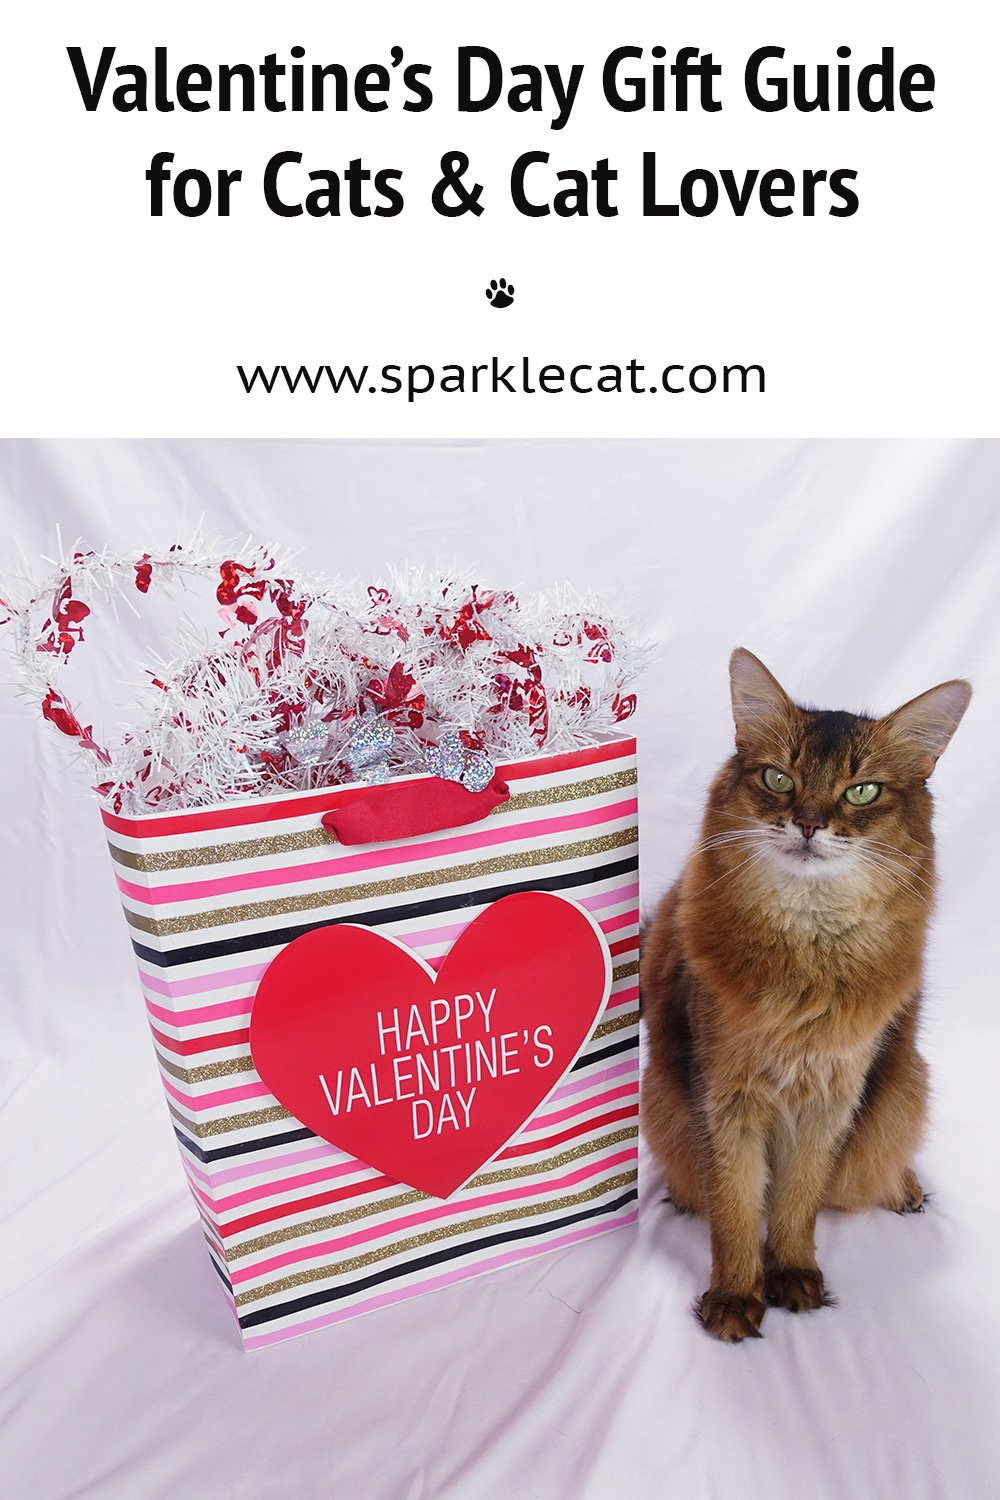 Valentine\'s Day Gift Guide for Cats and Cat Lovers From Etsy - 2021 Edition